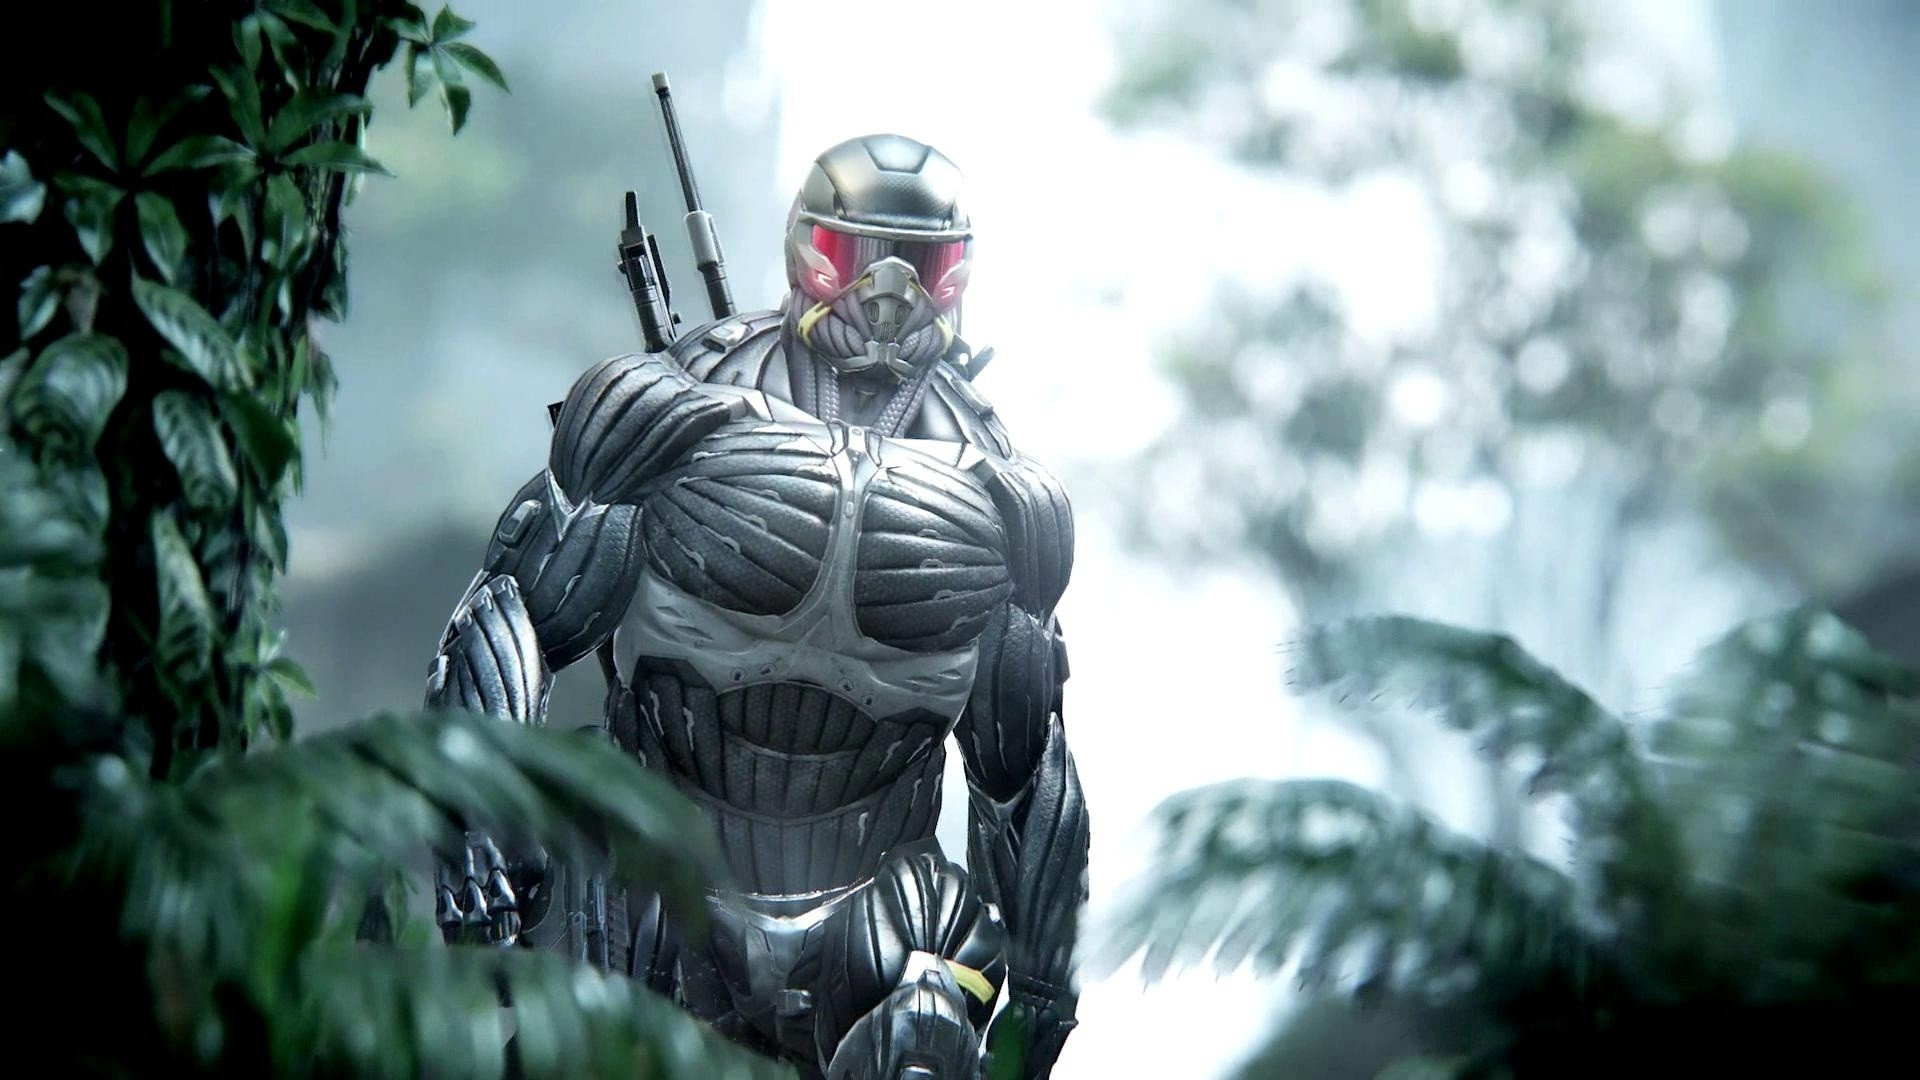 crysis 4 wallpaper hd-#10